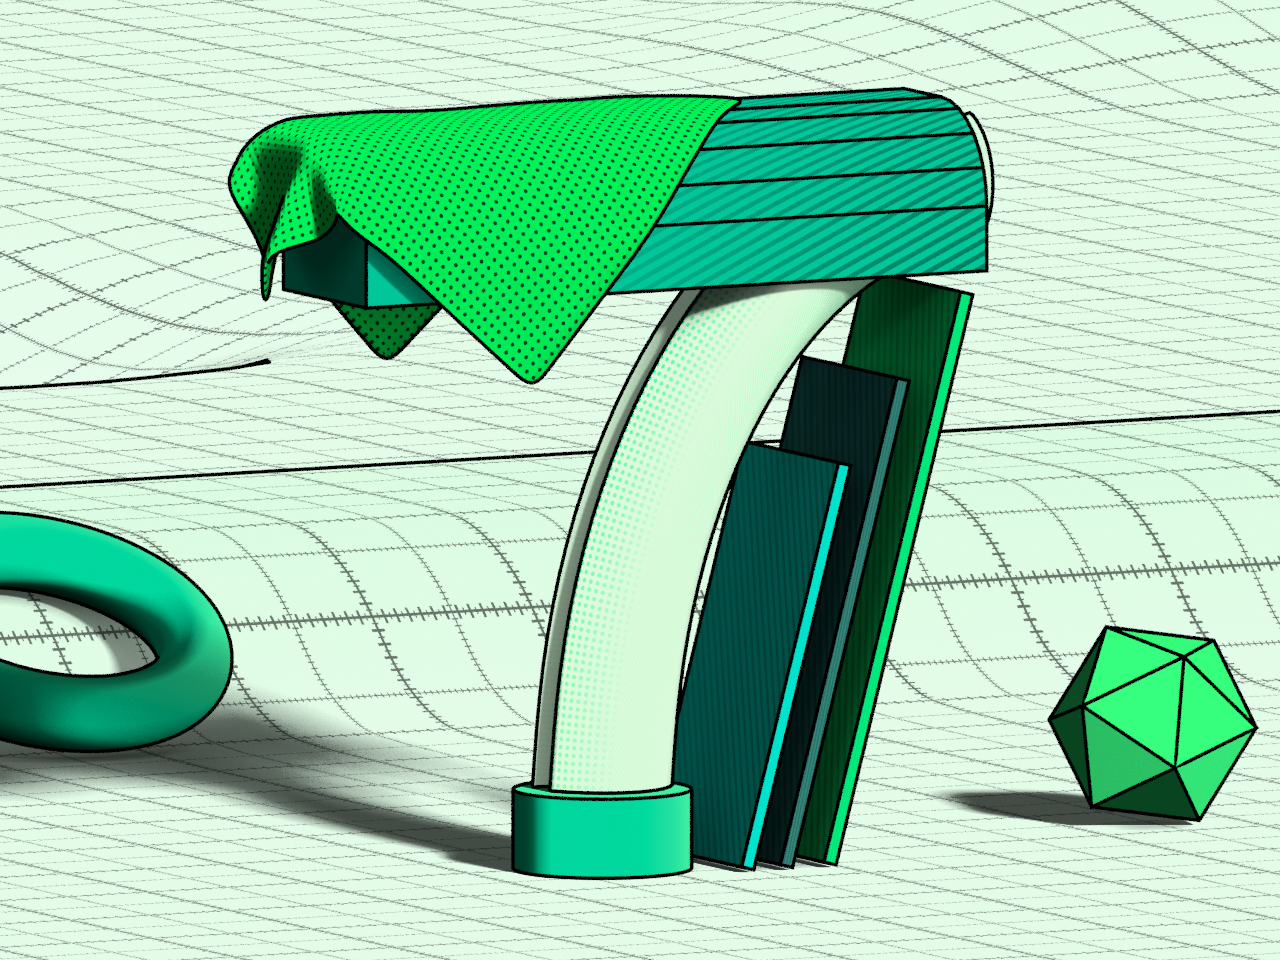 7 - 36 Days of Type shapes type art procedural geometry abstract design 36 days of type type cycles blender 3d